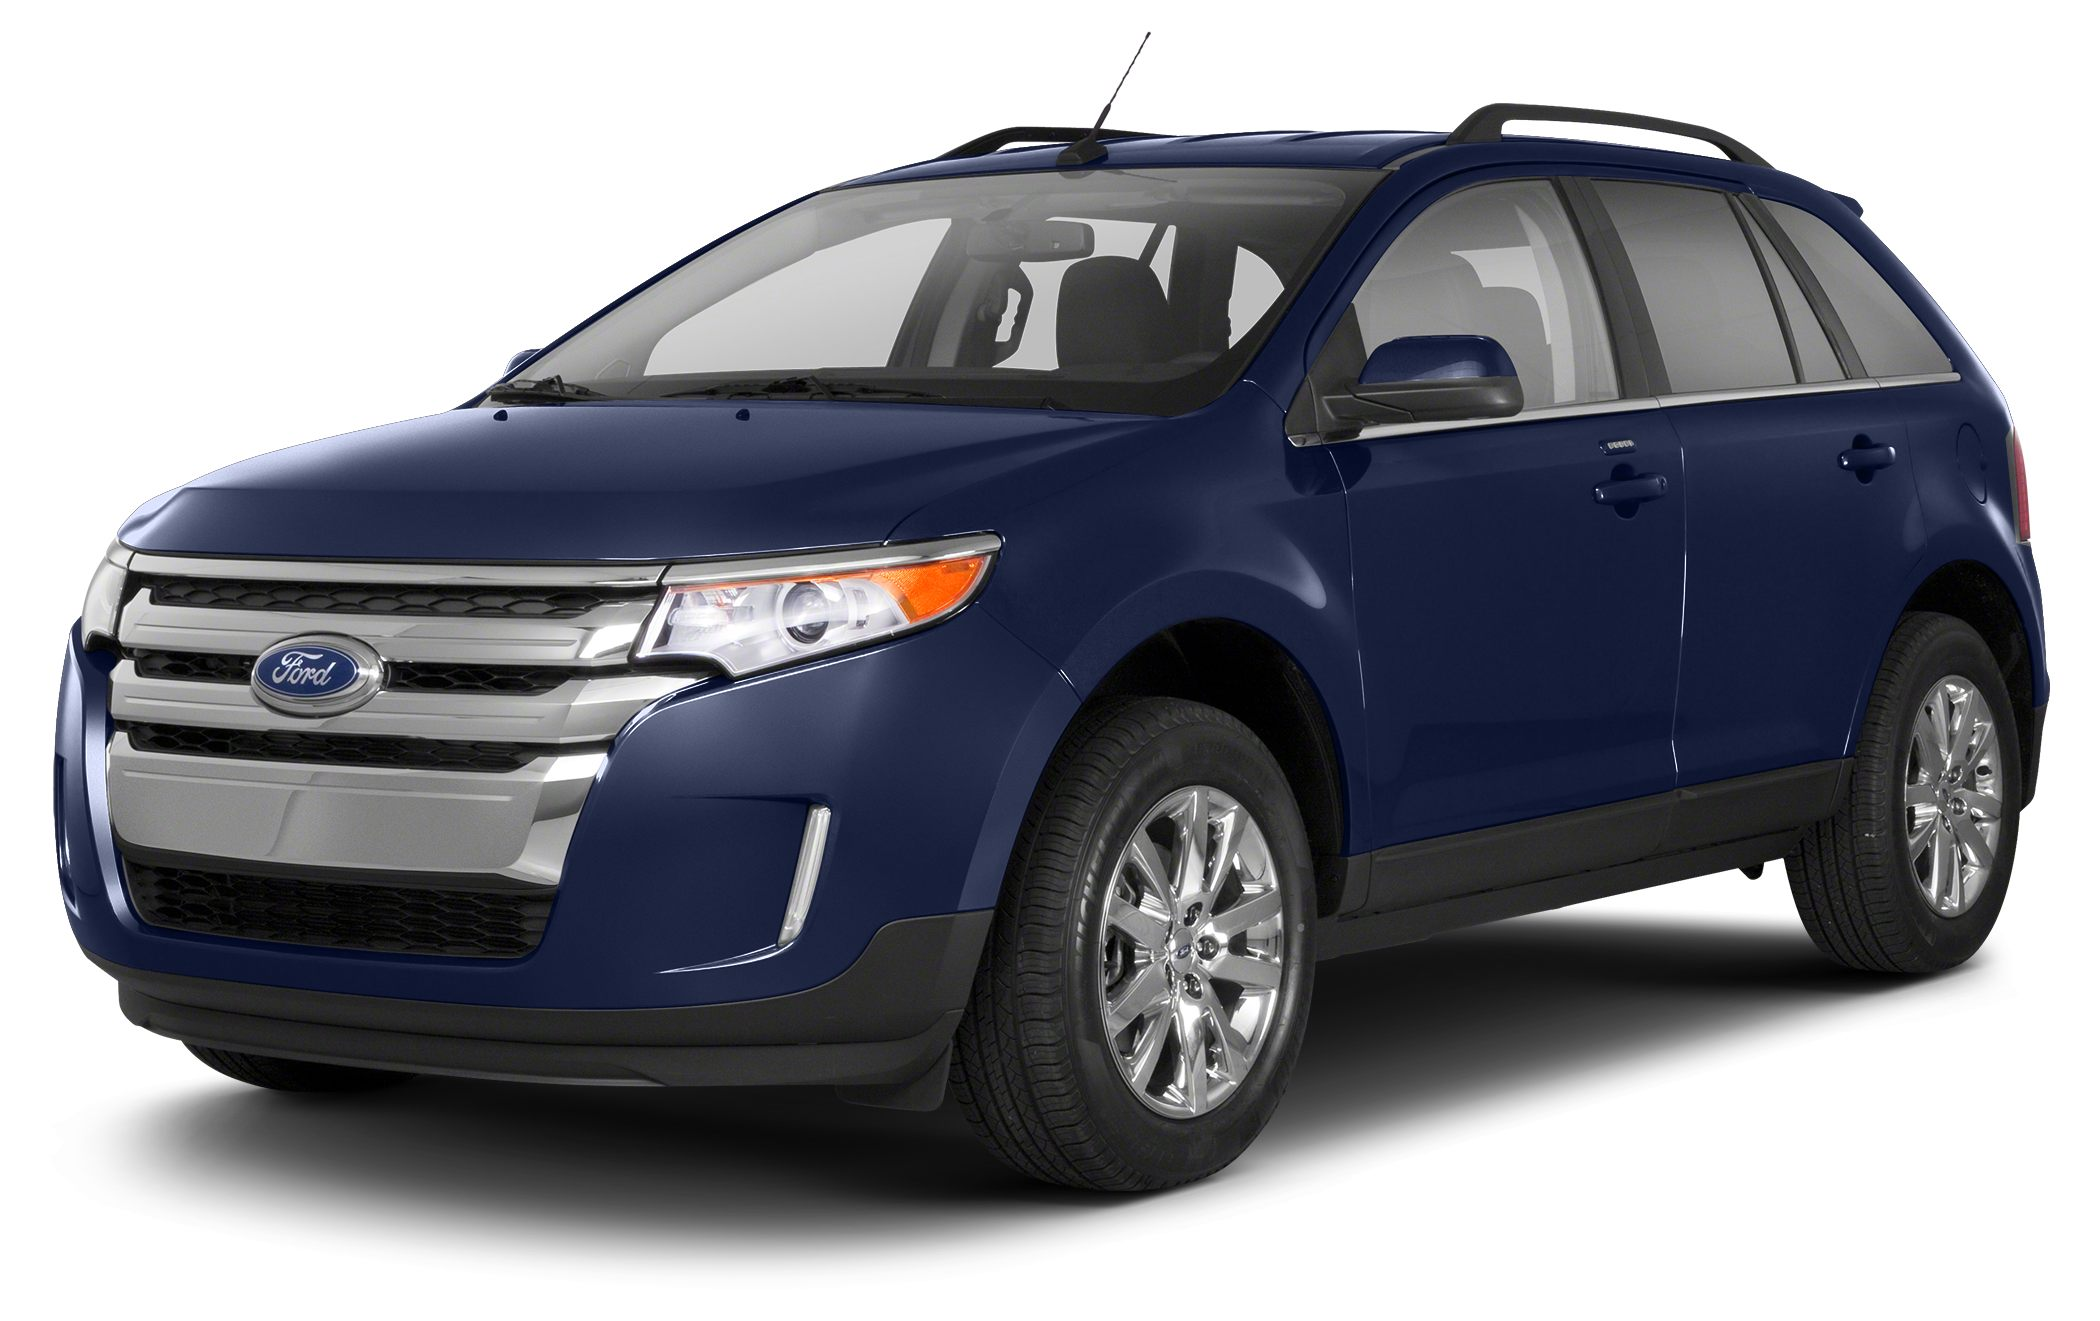 2013 Ford Edge SEL CARFAX 1-Owner FUEL EFFICIENT 25 MPG Hwy18 MPG City Heated Leather Seats Sat